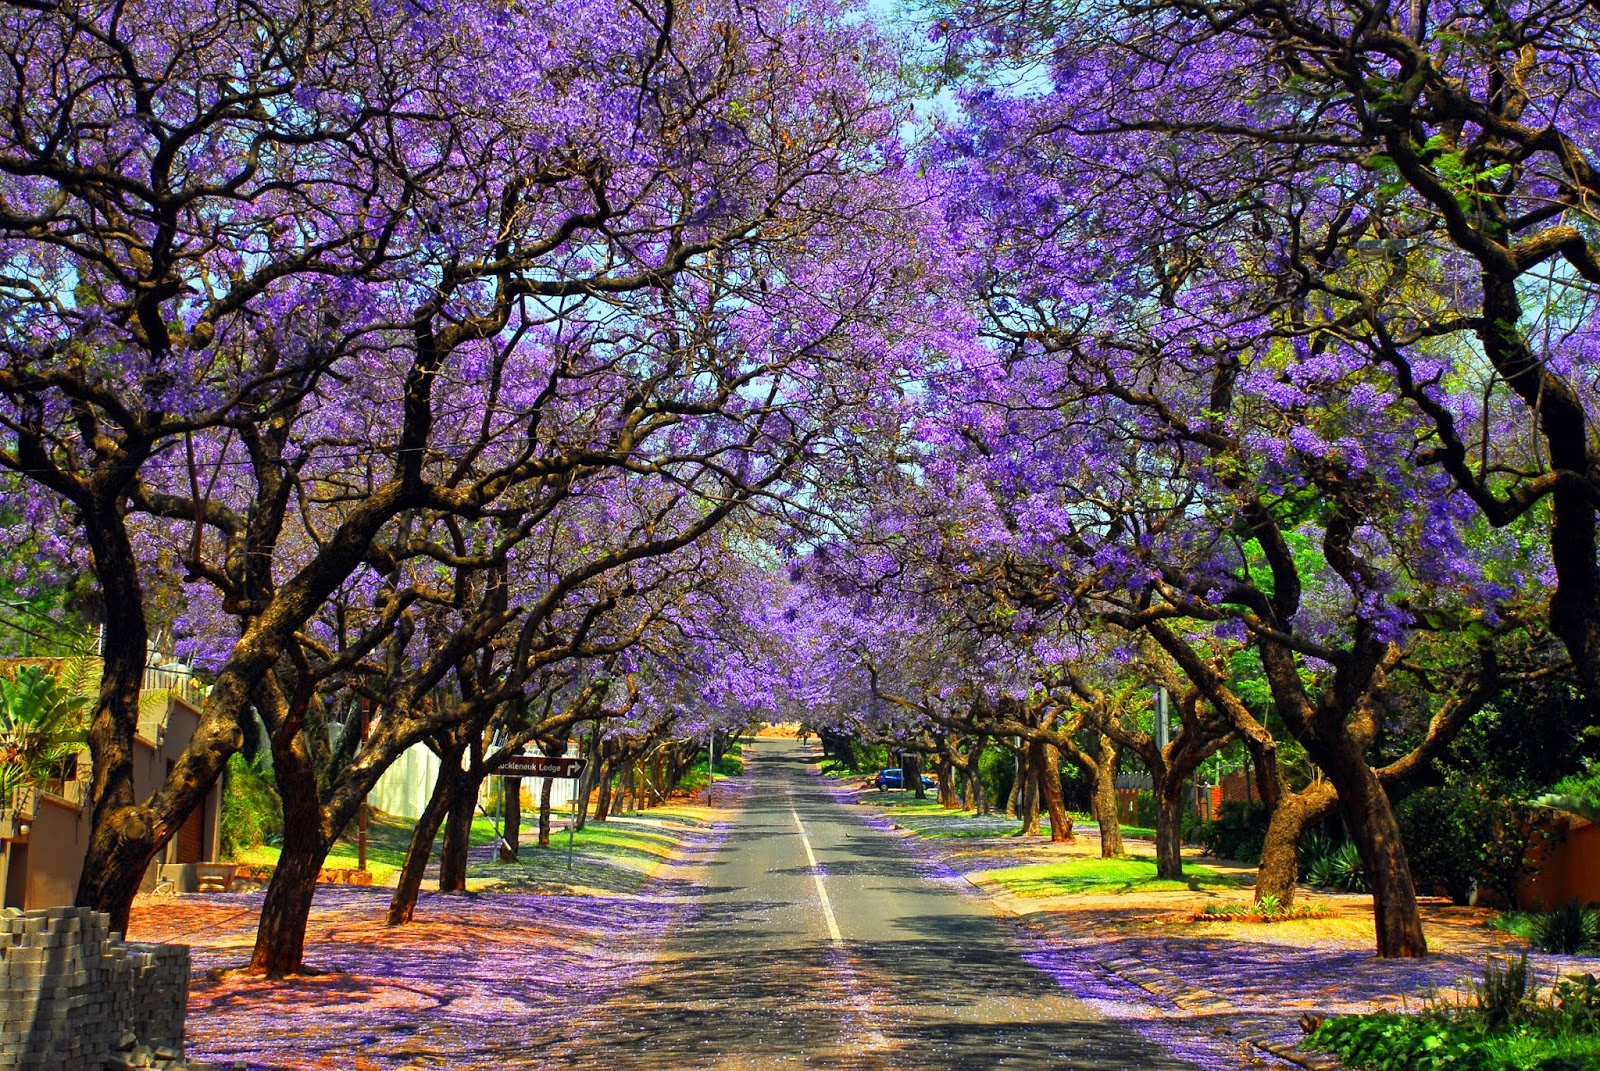 The jacaranda trees of Pretoria line the streets and burst into bloom during October